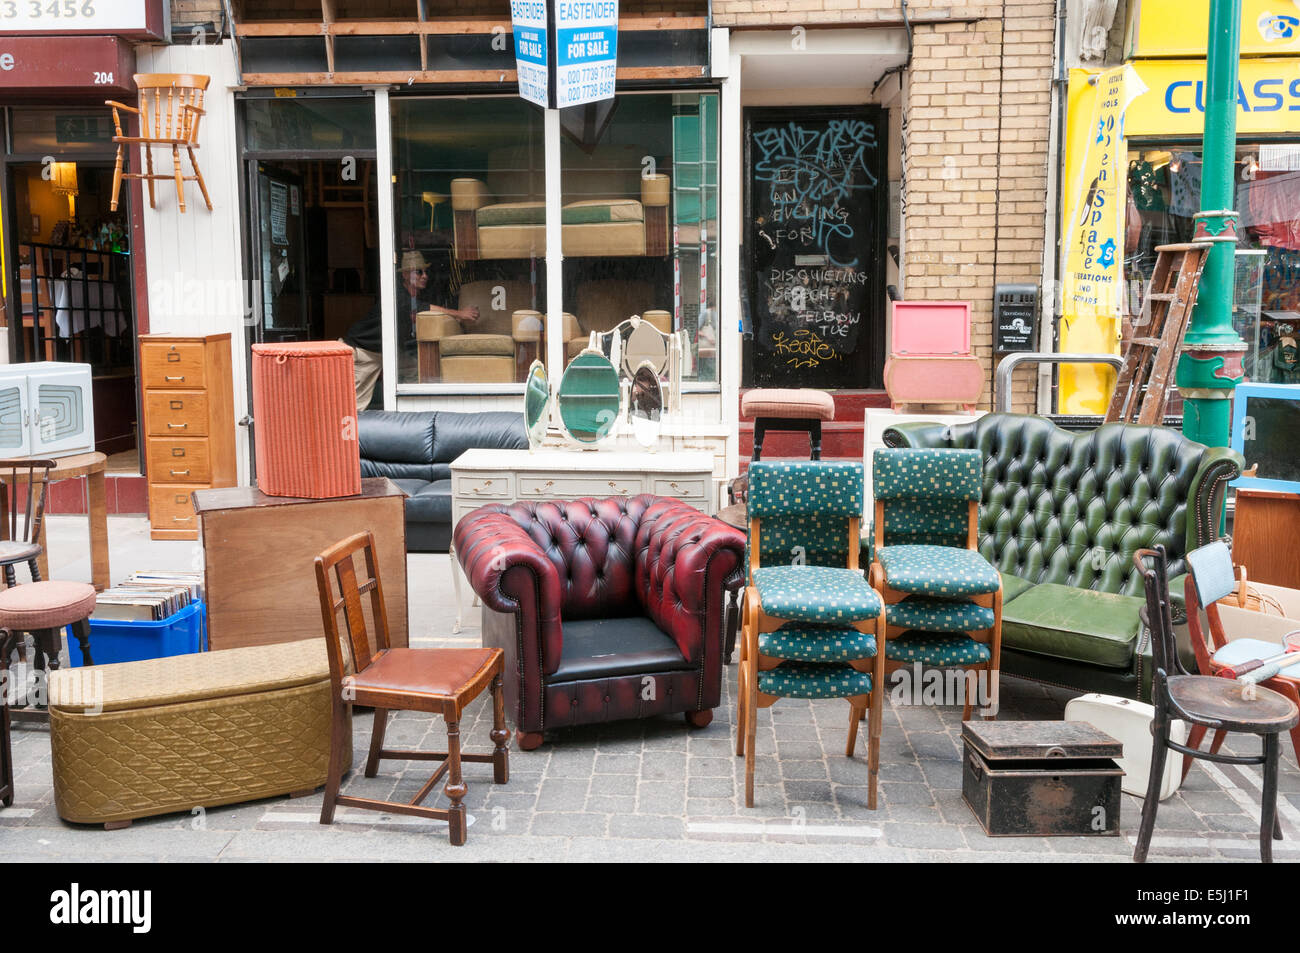 used furniture stock photos used furniture stock images alamy